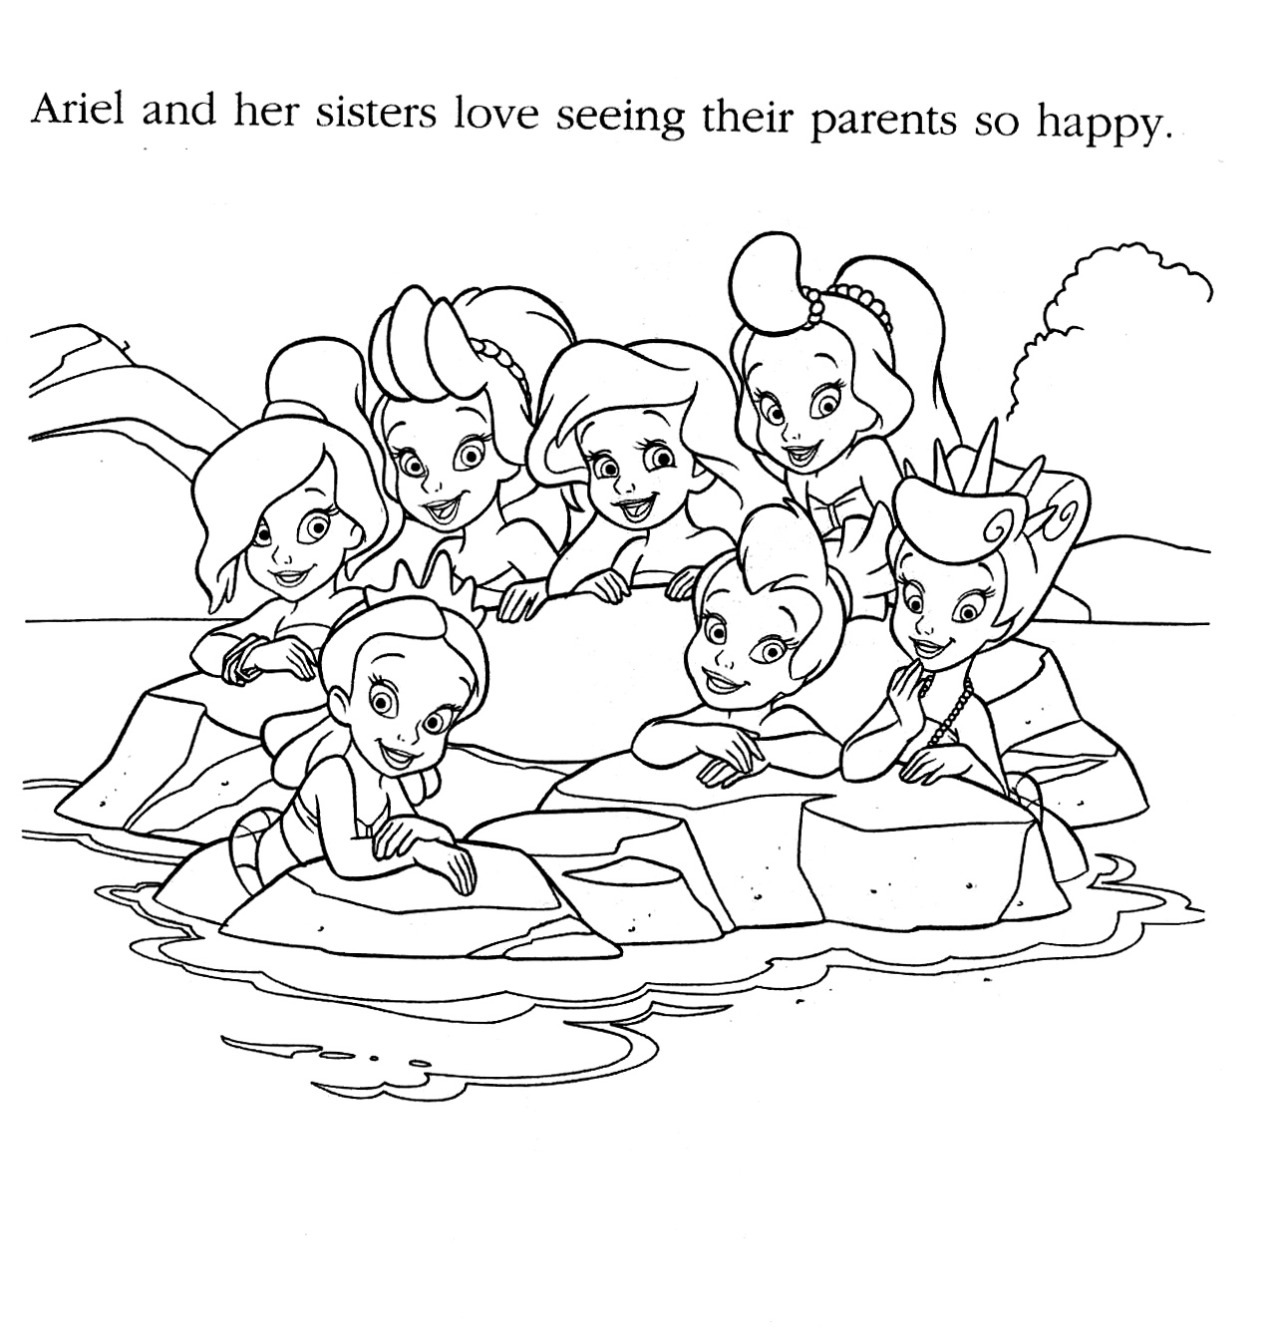 ariels sisters coloring pages ariels sisters little mermaid s8e44 coloring pages printable ariels coloring pages sisters